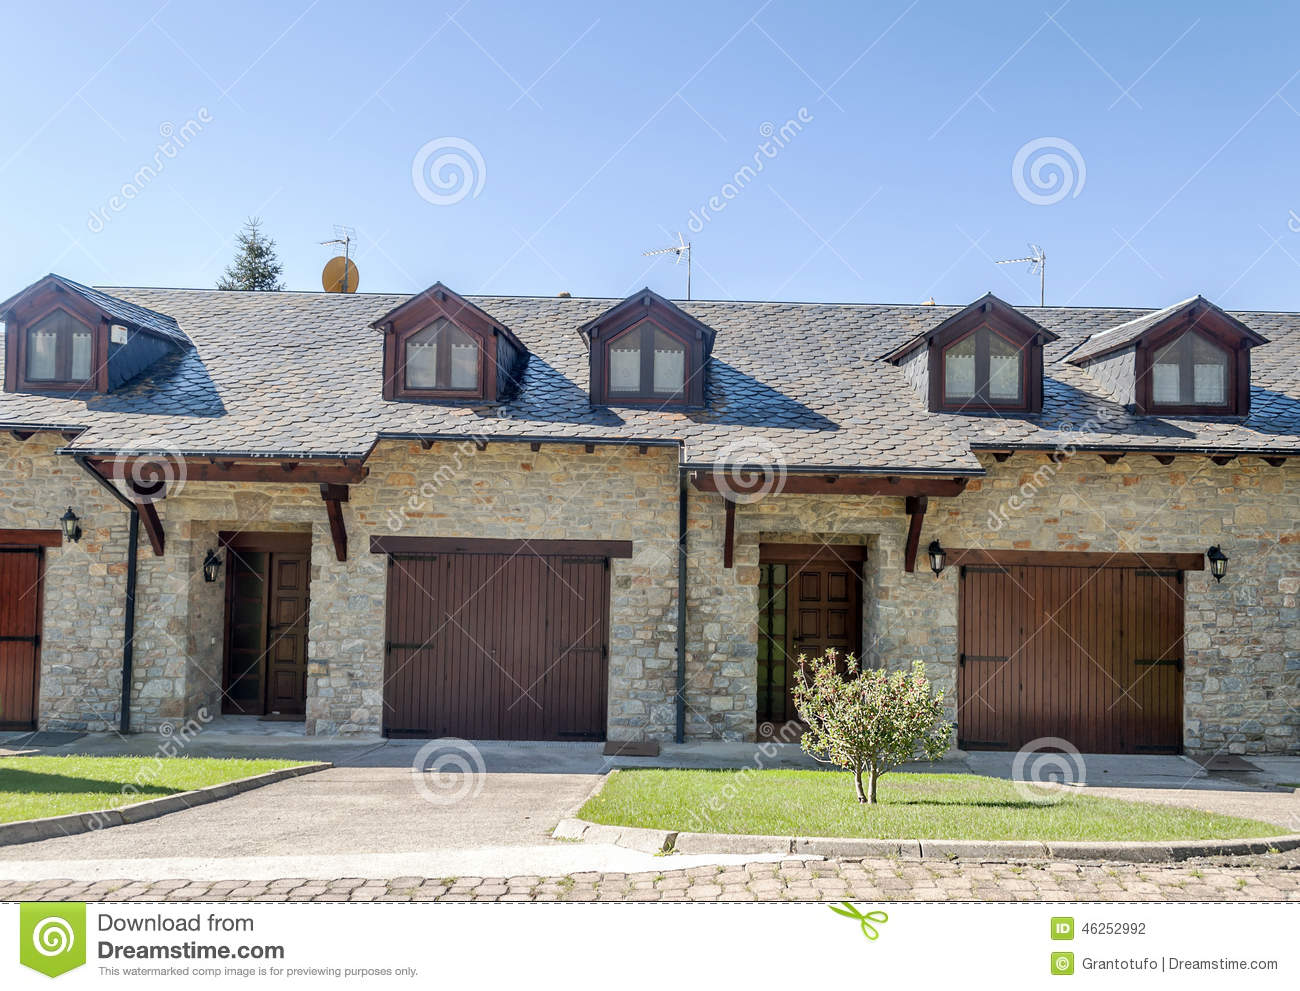 Facade of stone house Houses with stone facade